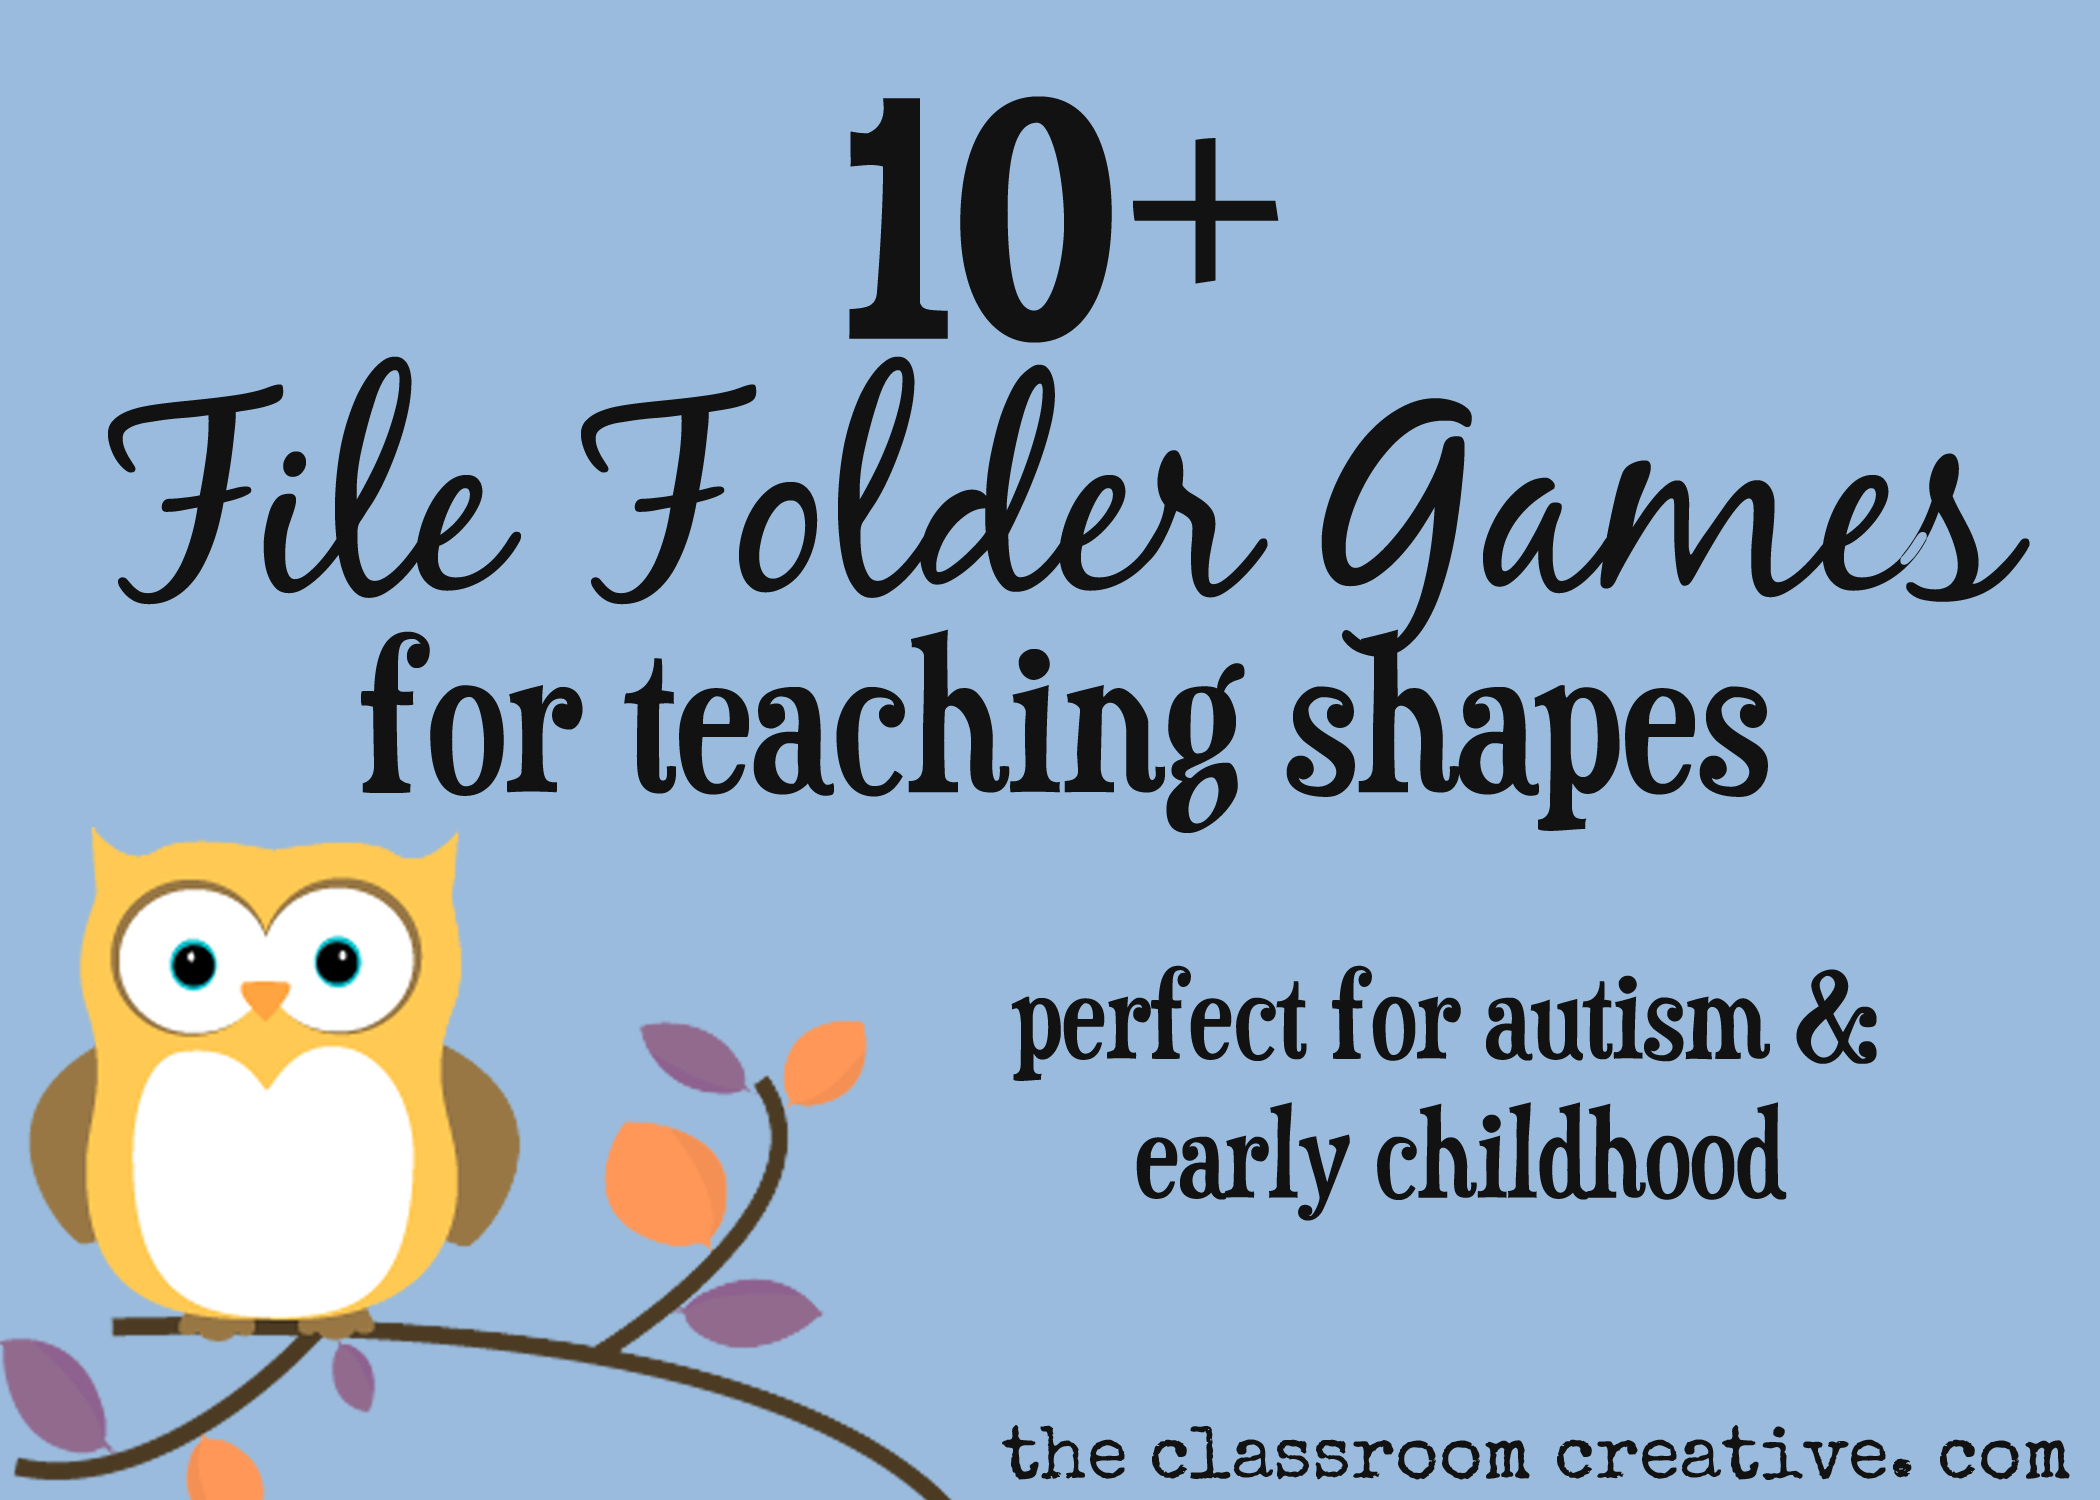 File Folder Games For Teaching Shapes - Free Printable File Folder Games